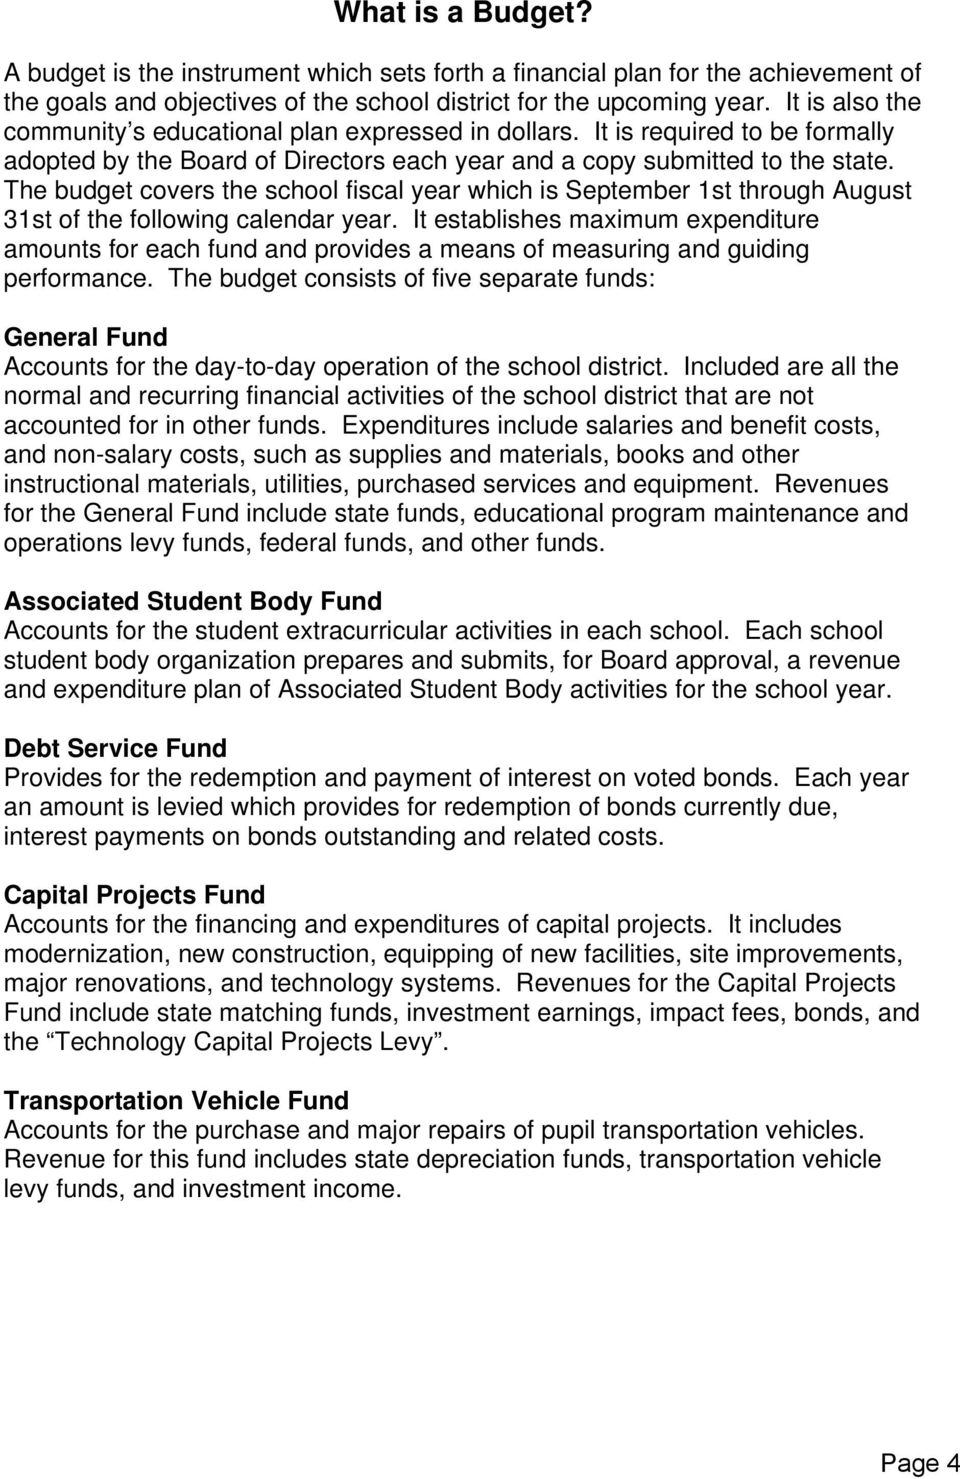 The budget covers the school fiscal year which is September 1st through August 31st of the following calendar year.